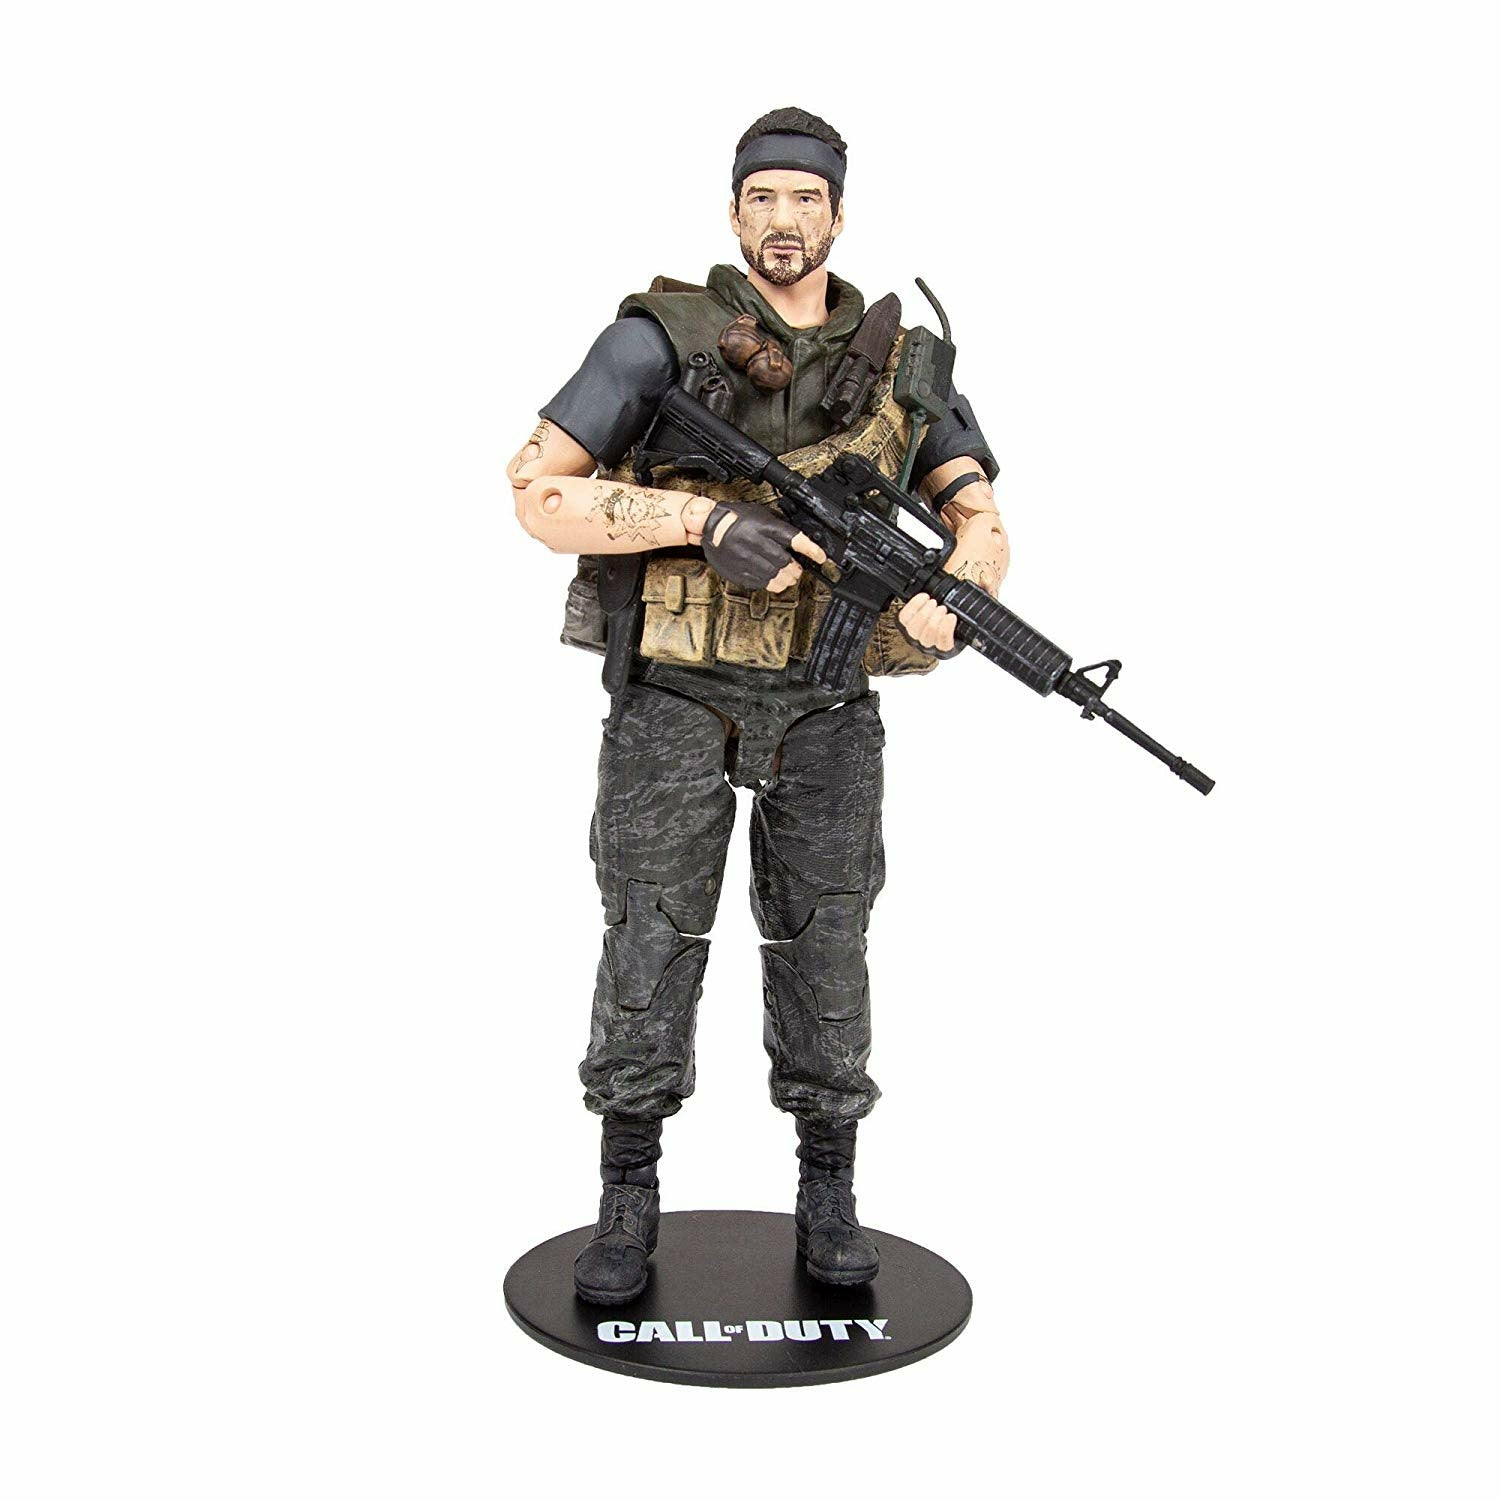 Call of Duty 2 Frank Woods 7 inch Action Figure